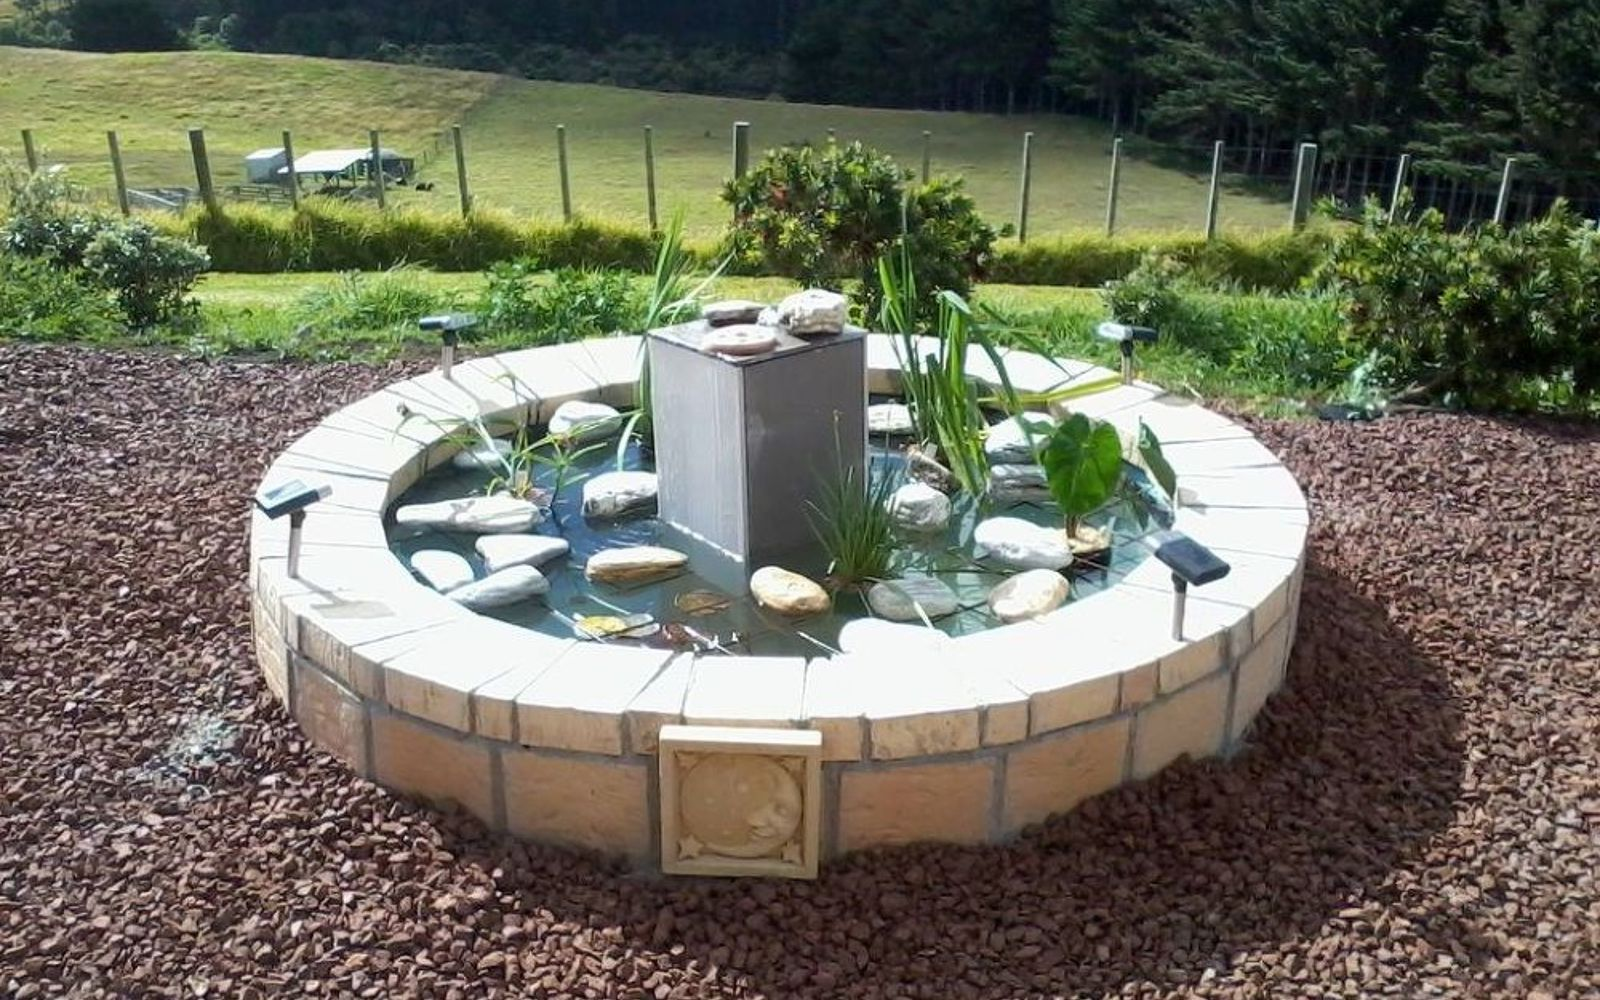 s 10 mini water features to add zen to your garden, outdoor living, ponds water features, Flip an old hot tub into a plant pond